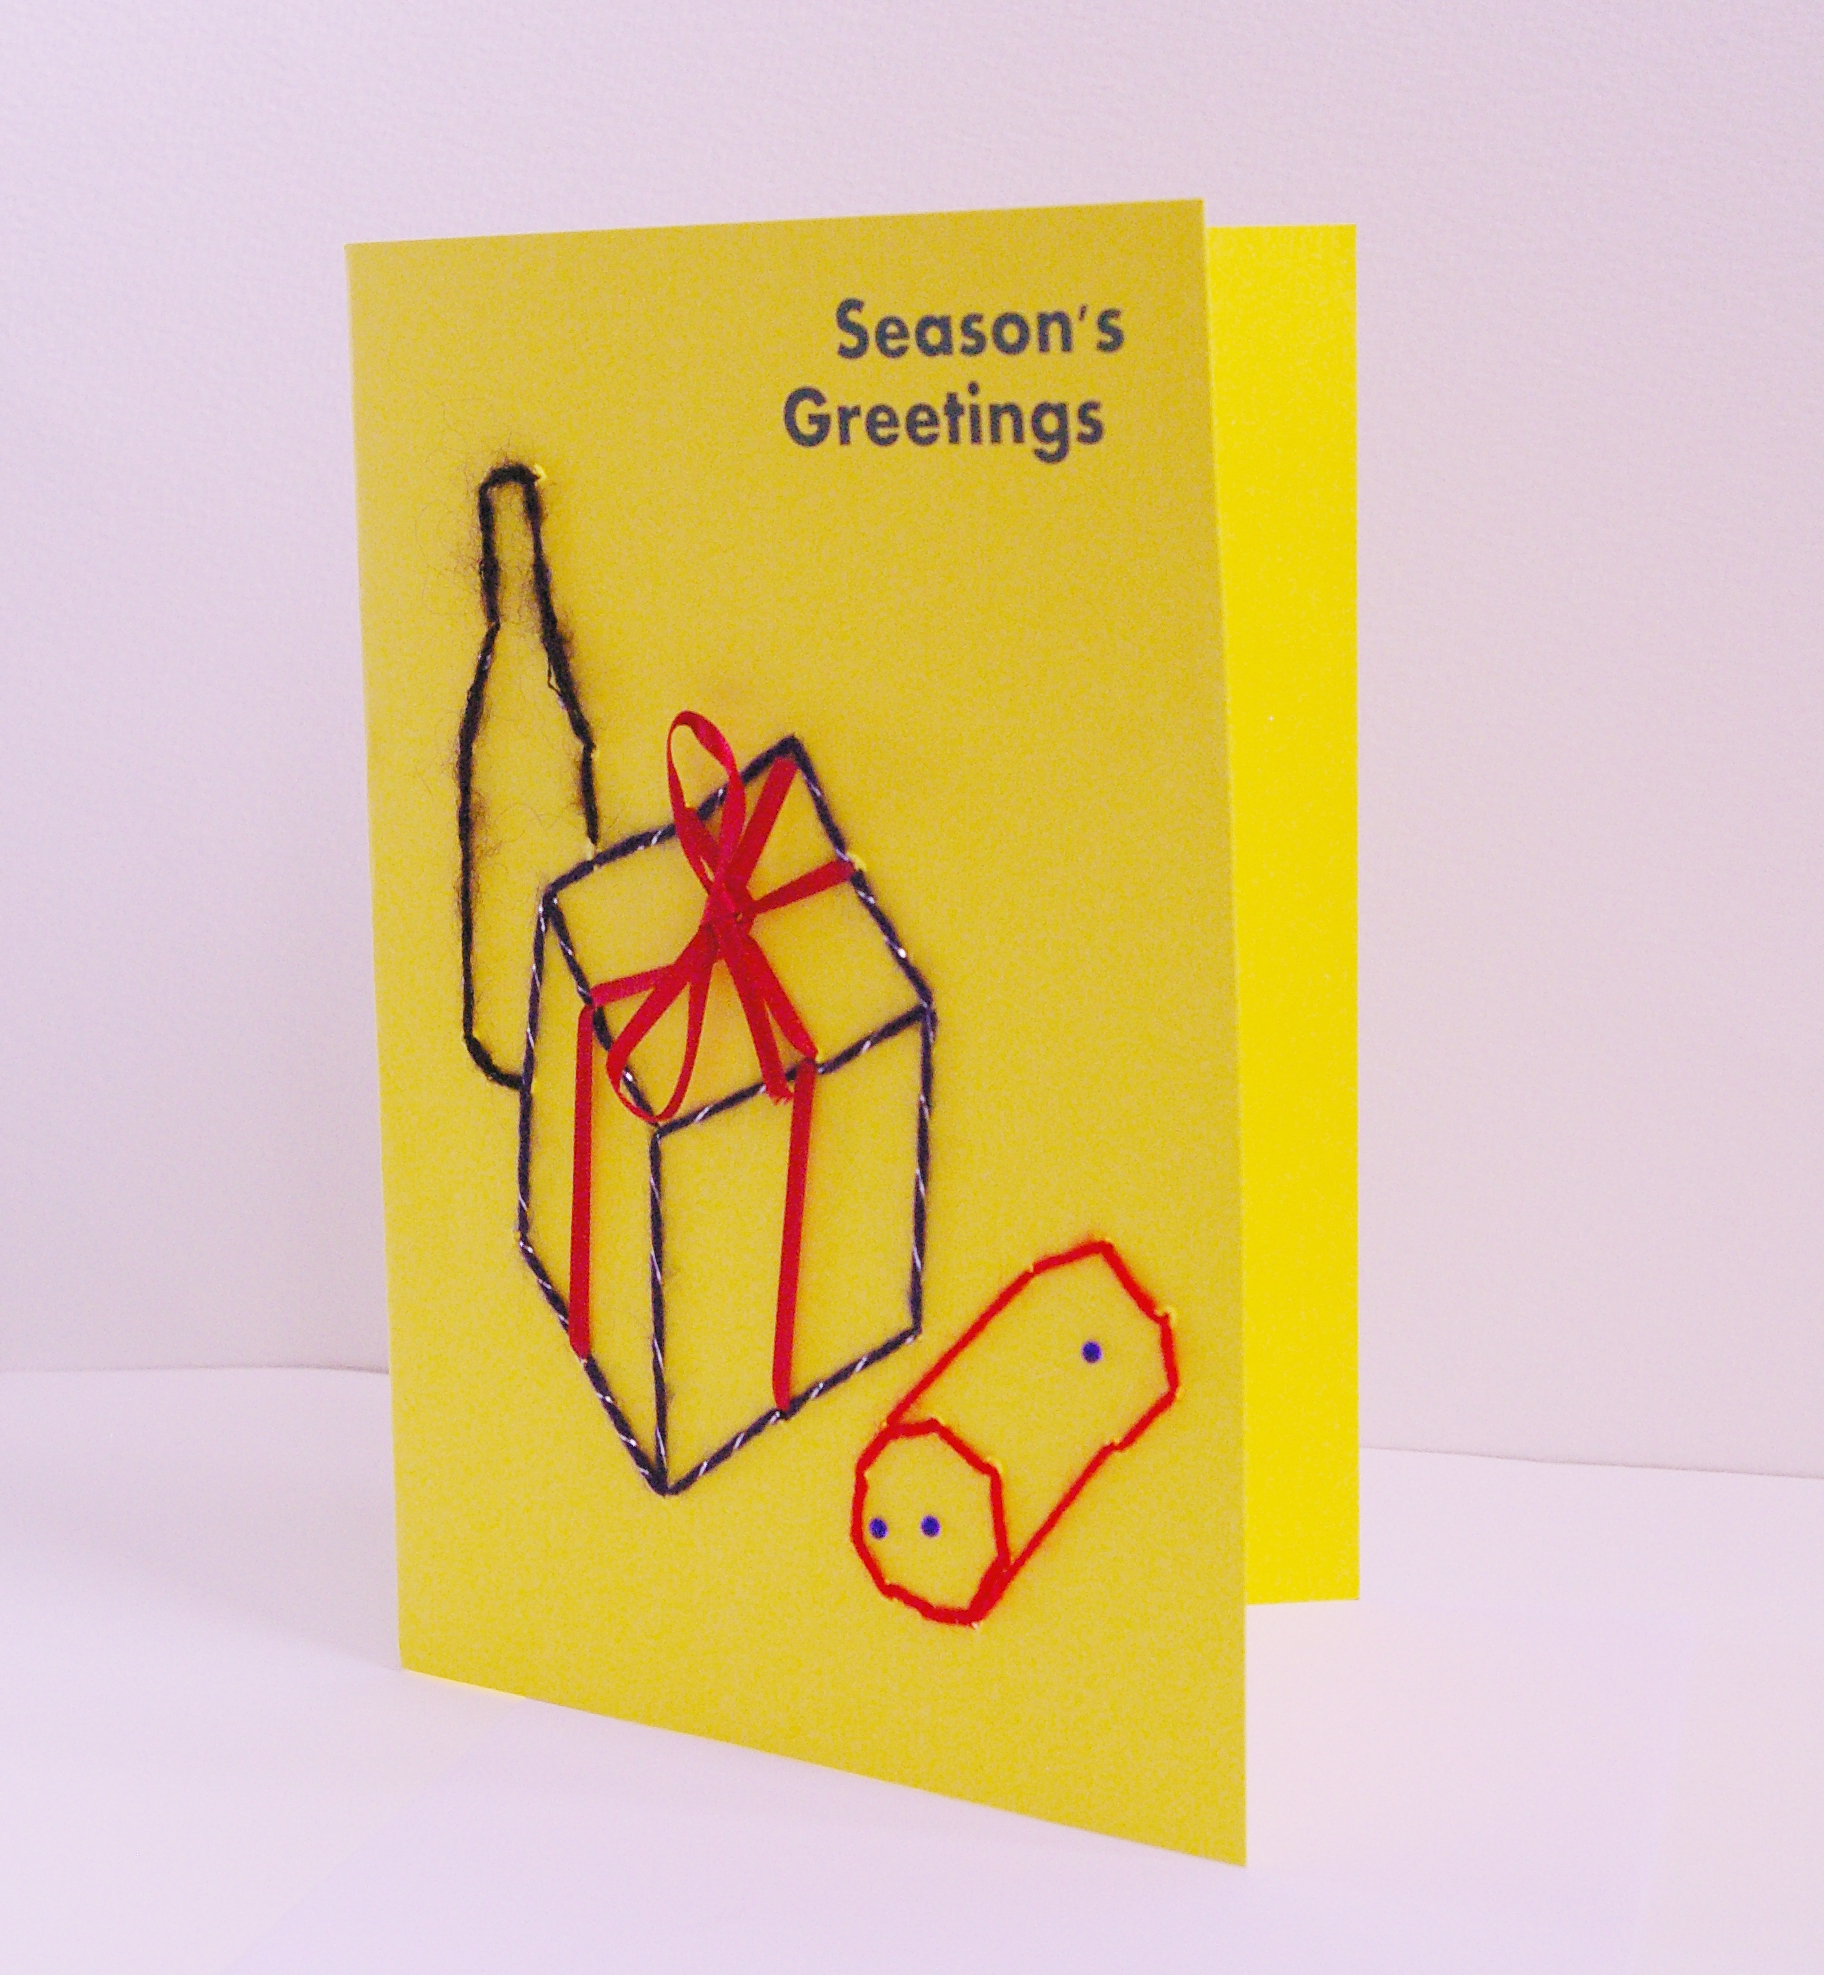 portrait style yellow card pressies image season's greetings card